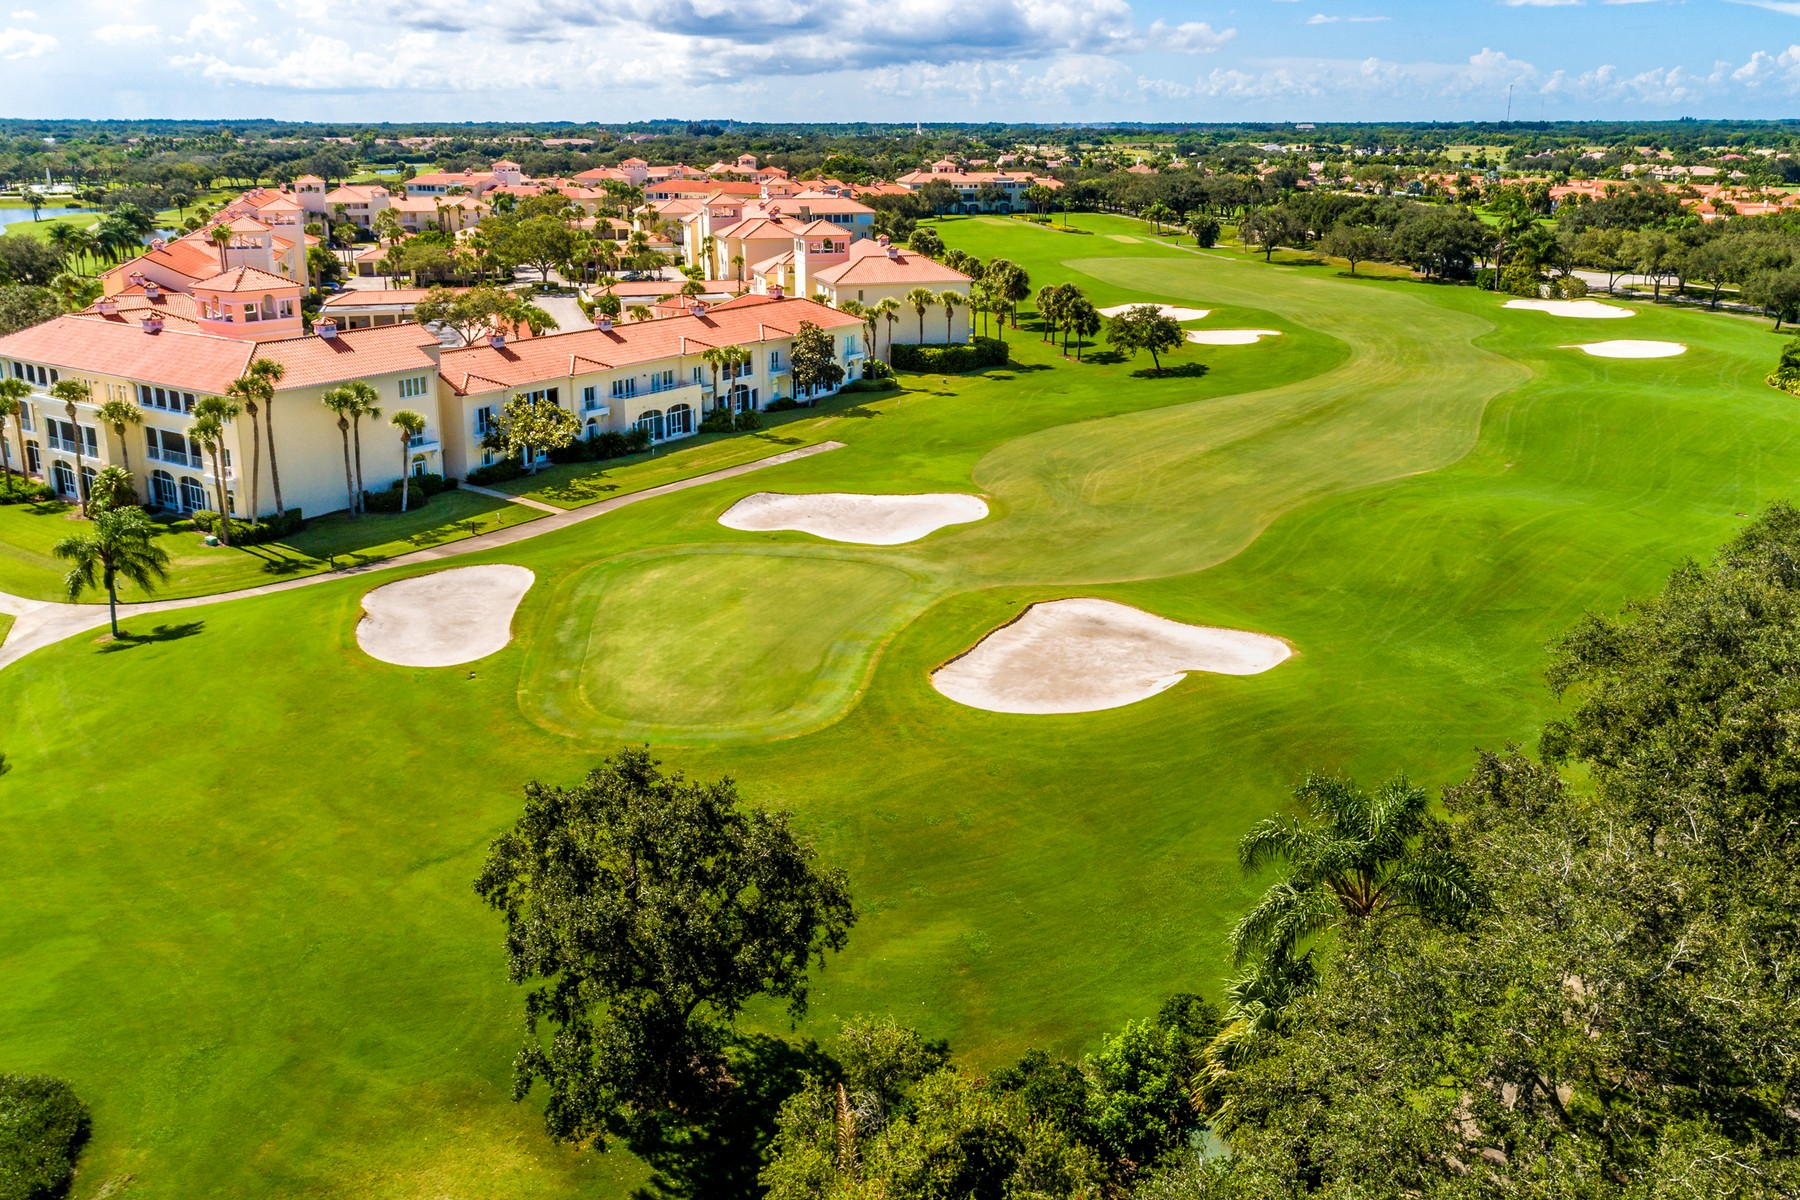 Additional photo for property listing at Luxury New Home in the Reserve at Grand Harbor 2373 Grand Harbor Reserve Square Vero Beach, Florida 32967 United States